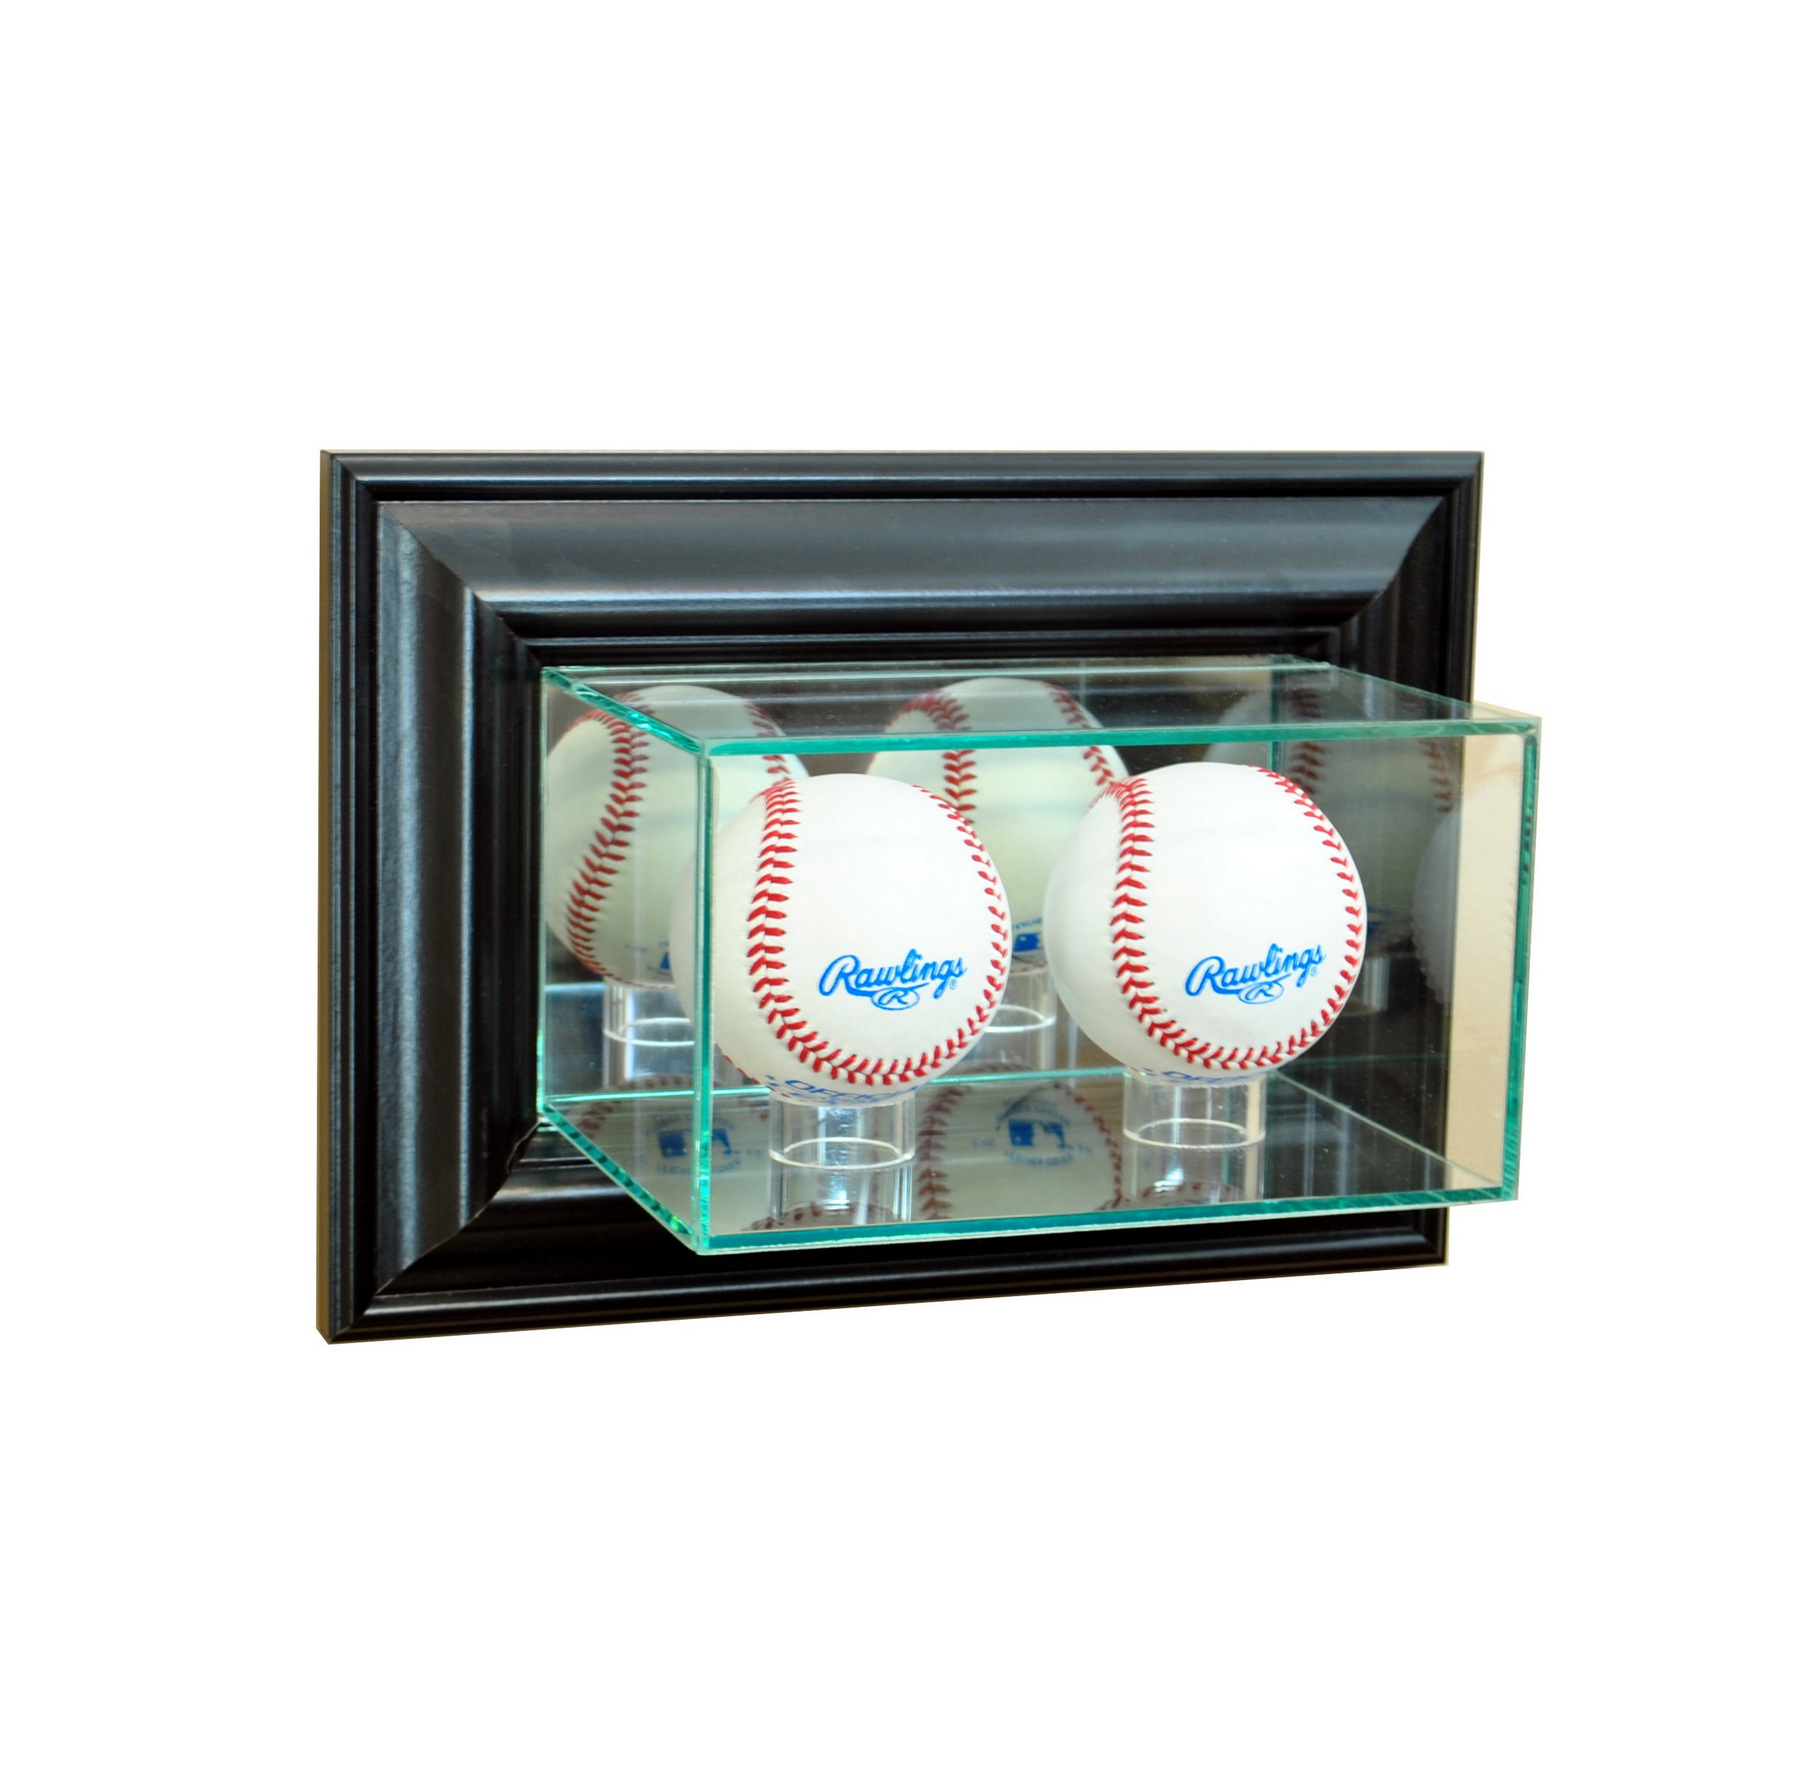 #933C38 WALL MOUNT GLASS DOUBLE BASEBALL DISPLAY CASE UV  with 1800x1788 px of Most Effective Glass Display Cases Wall Mounted 17881800 wallpaper @ avoidforclosure.info